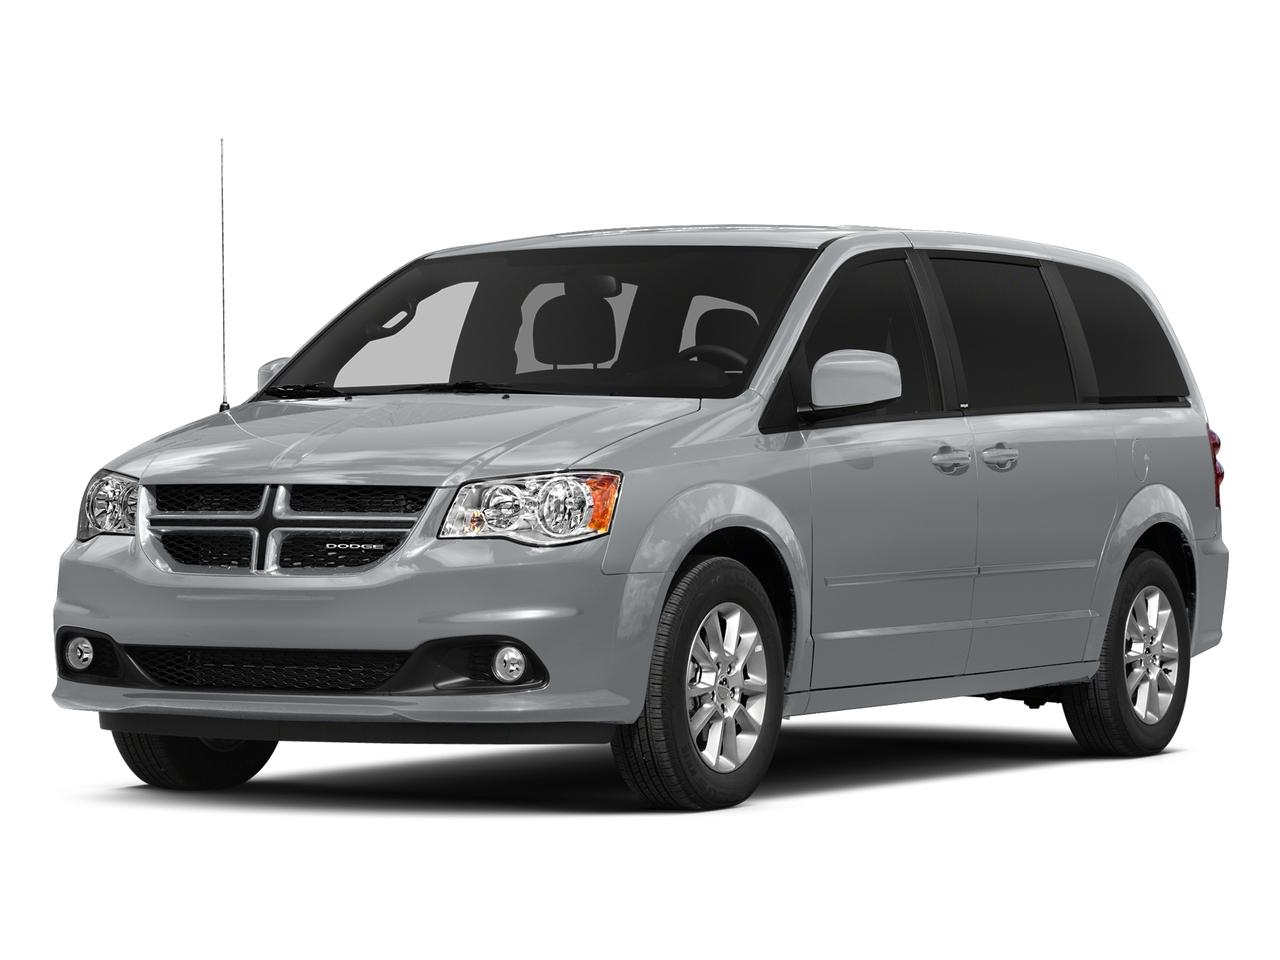 2016 Dodge Grand Caravan Vehicle Photo in Rockford, IL 61107